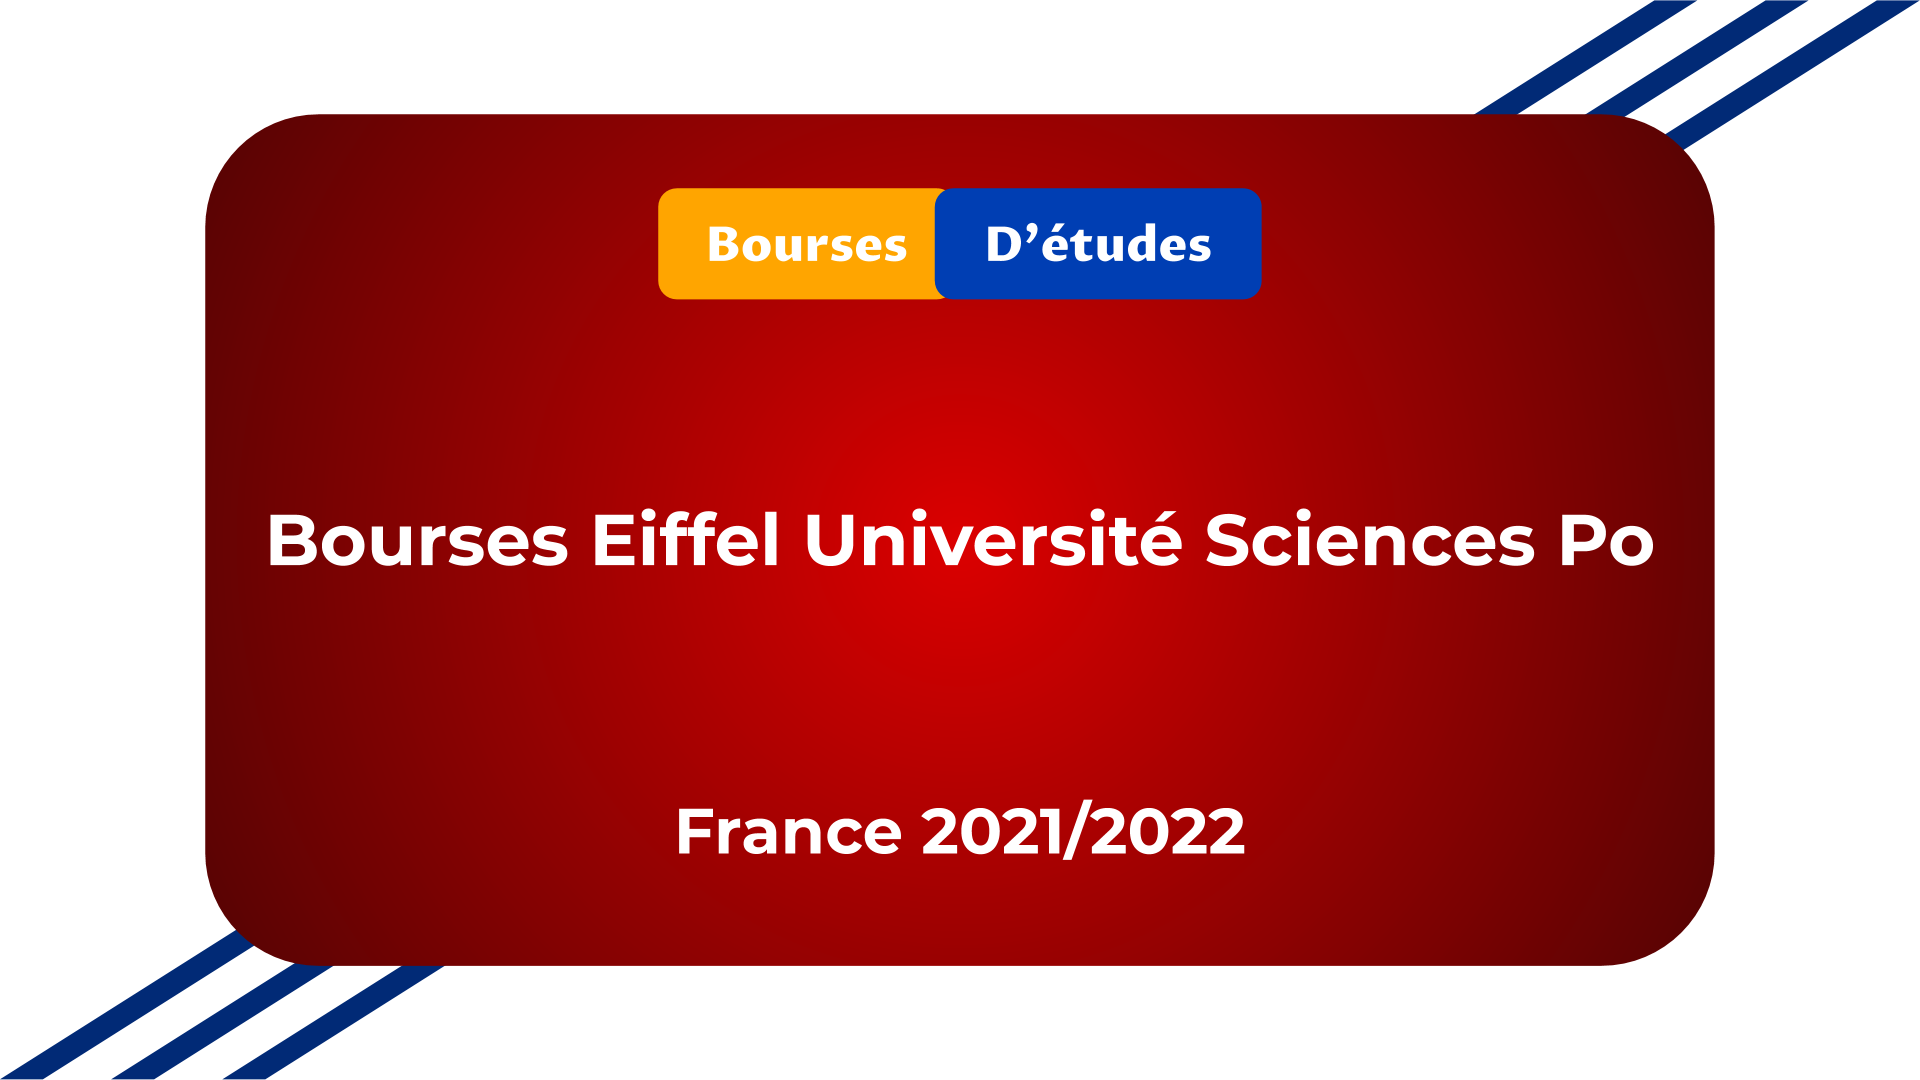 Bourses Eiffel Université Sciences Po en France 2021 2022